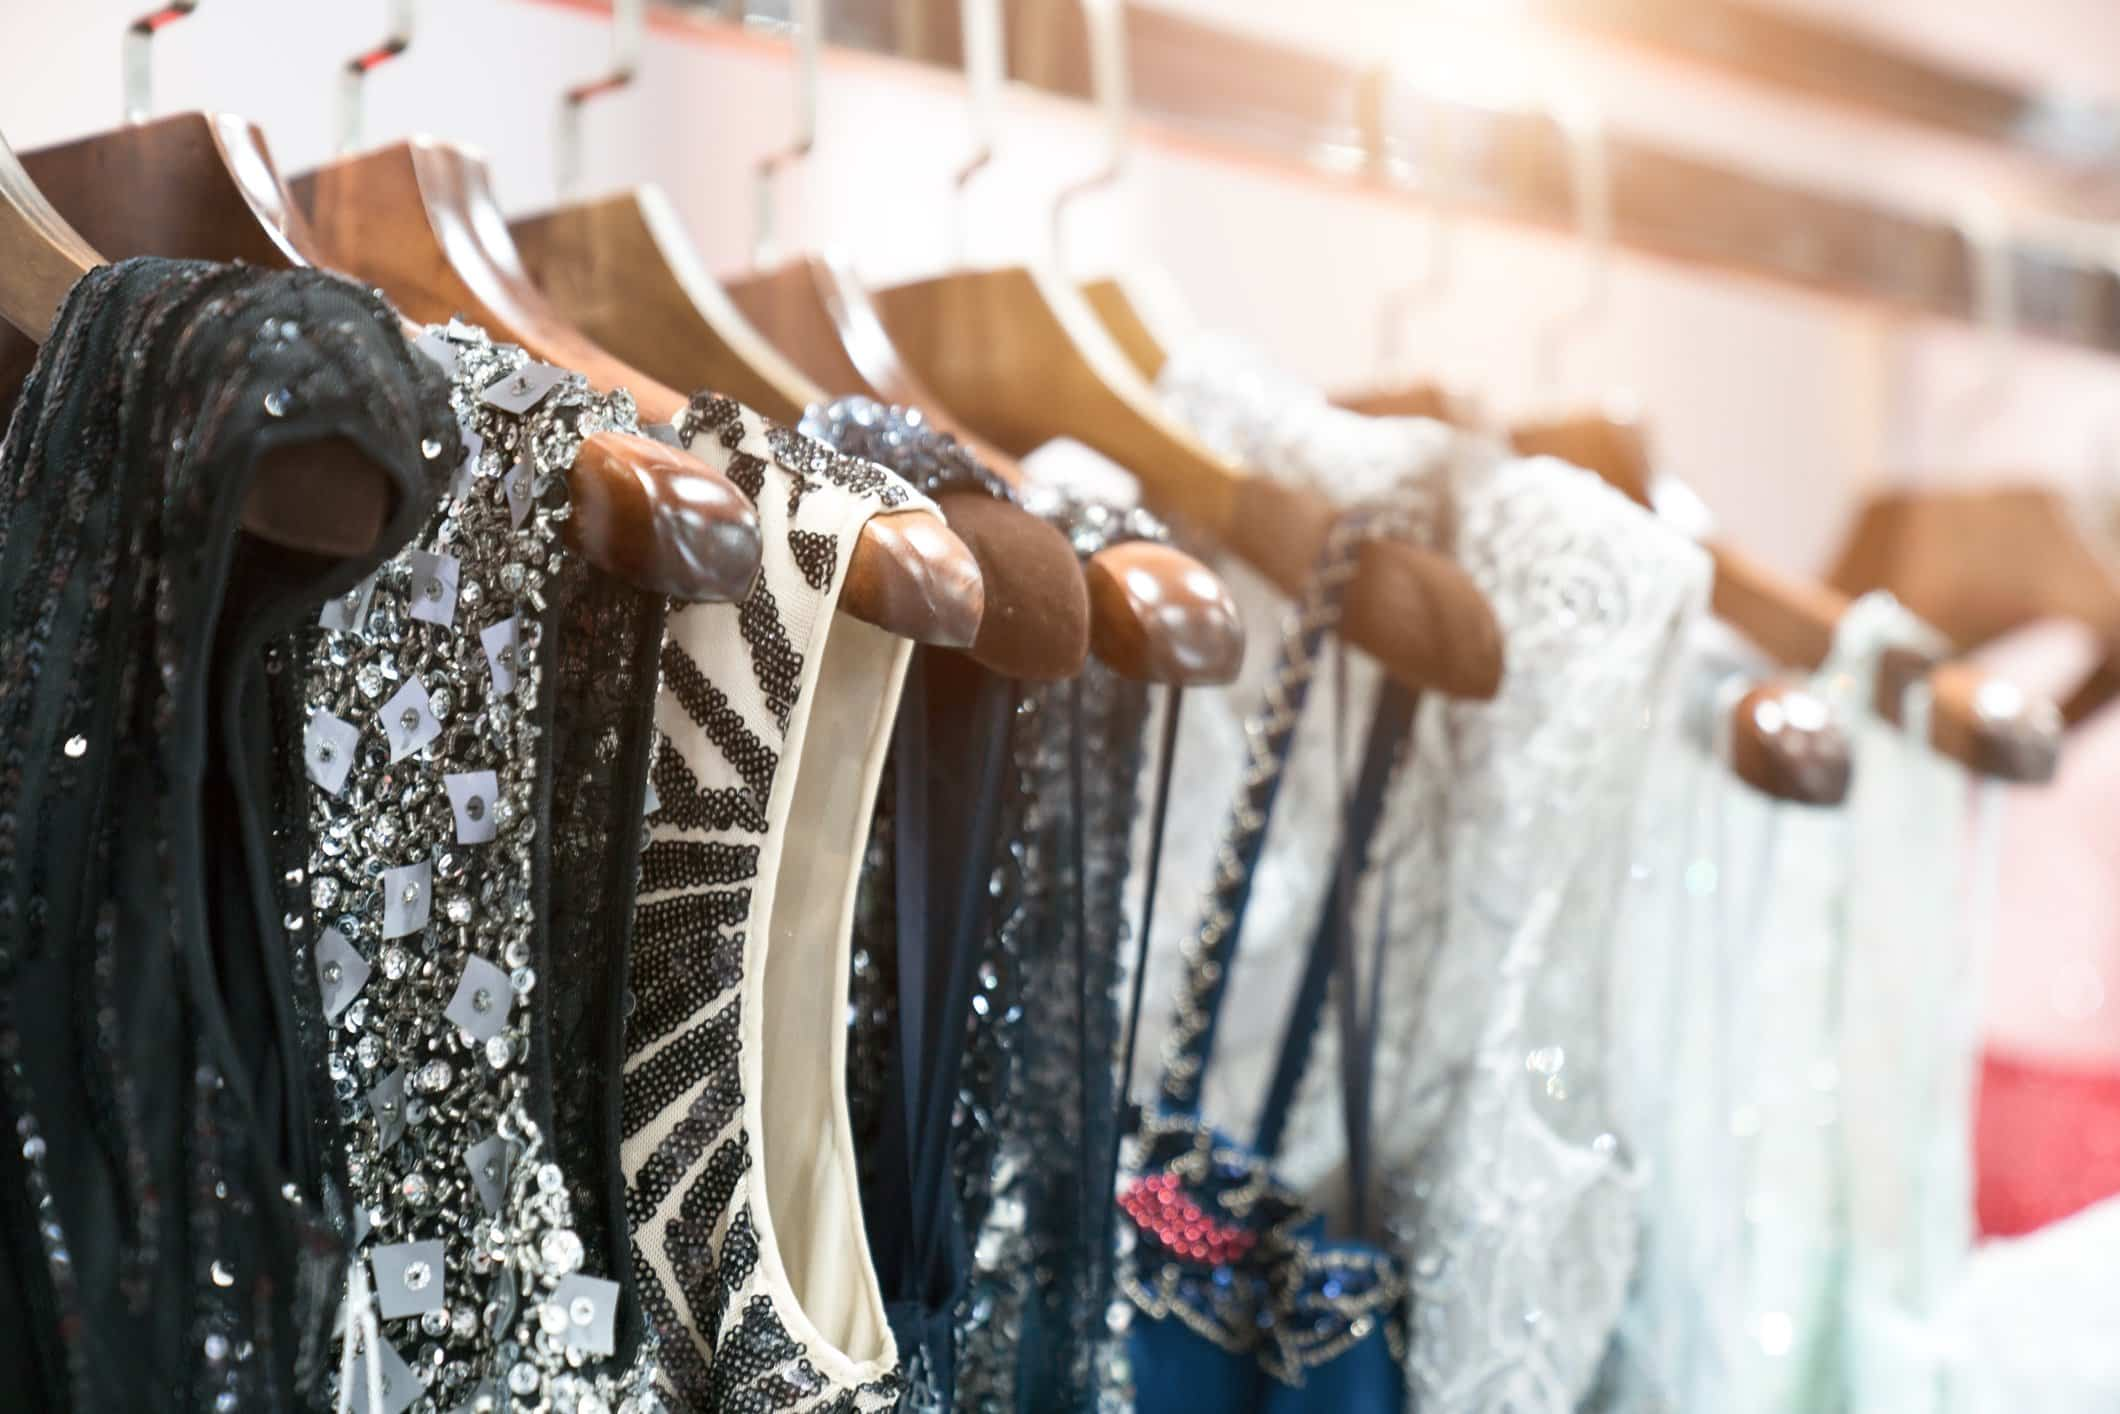 Creating A Customer Experience Fit For a VIP: 6 Best Practices for Luxury Retailers